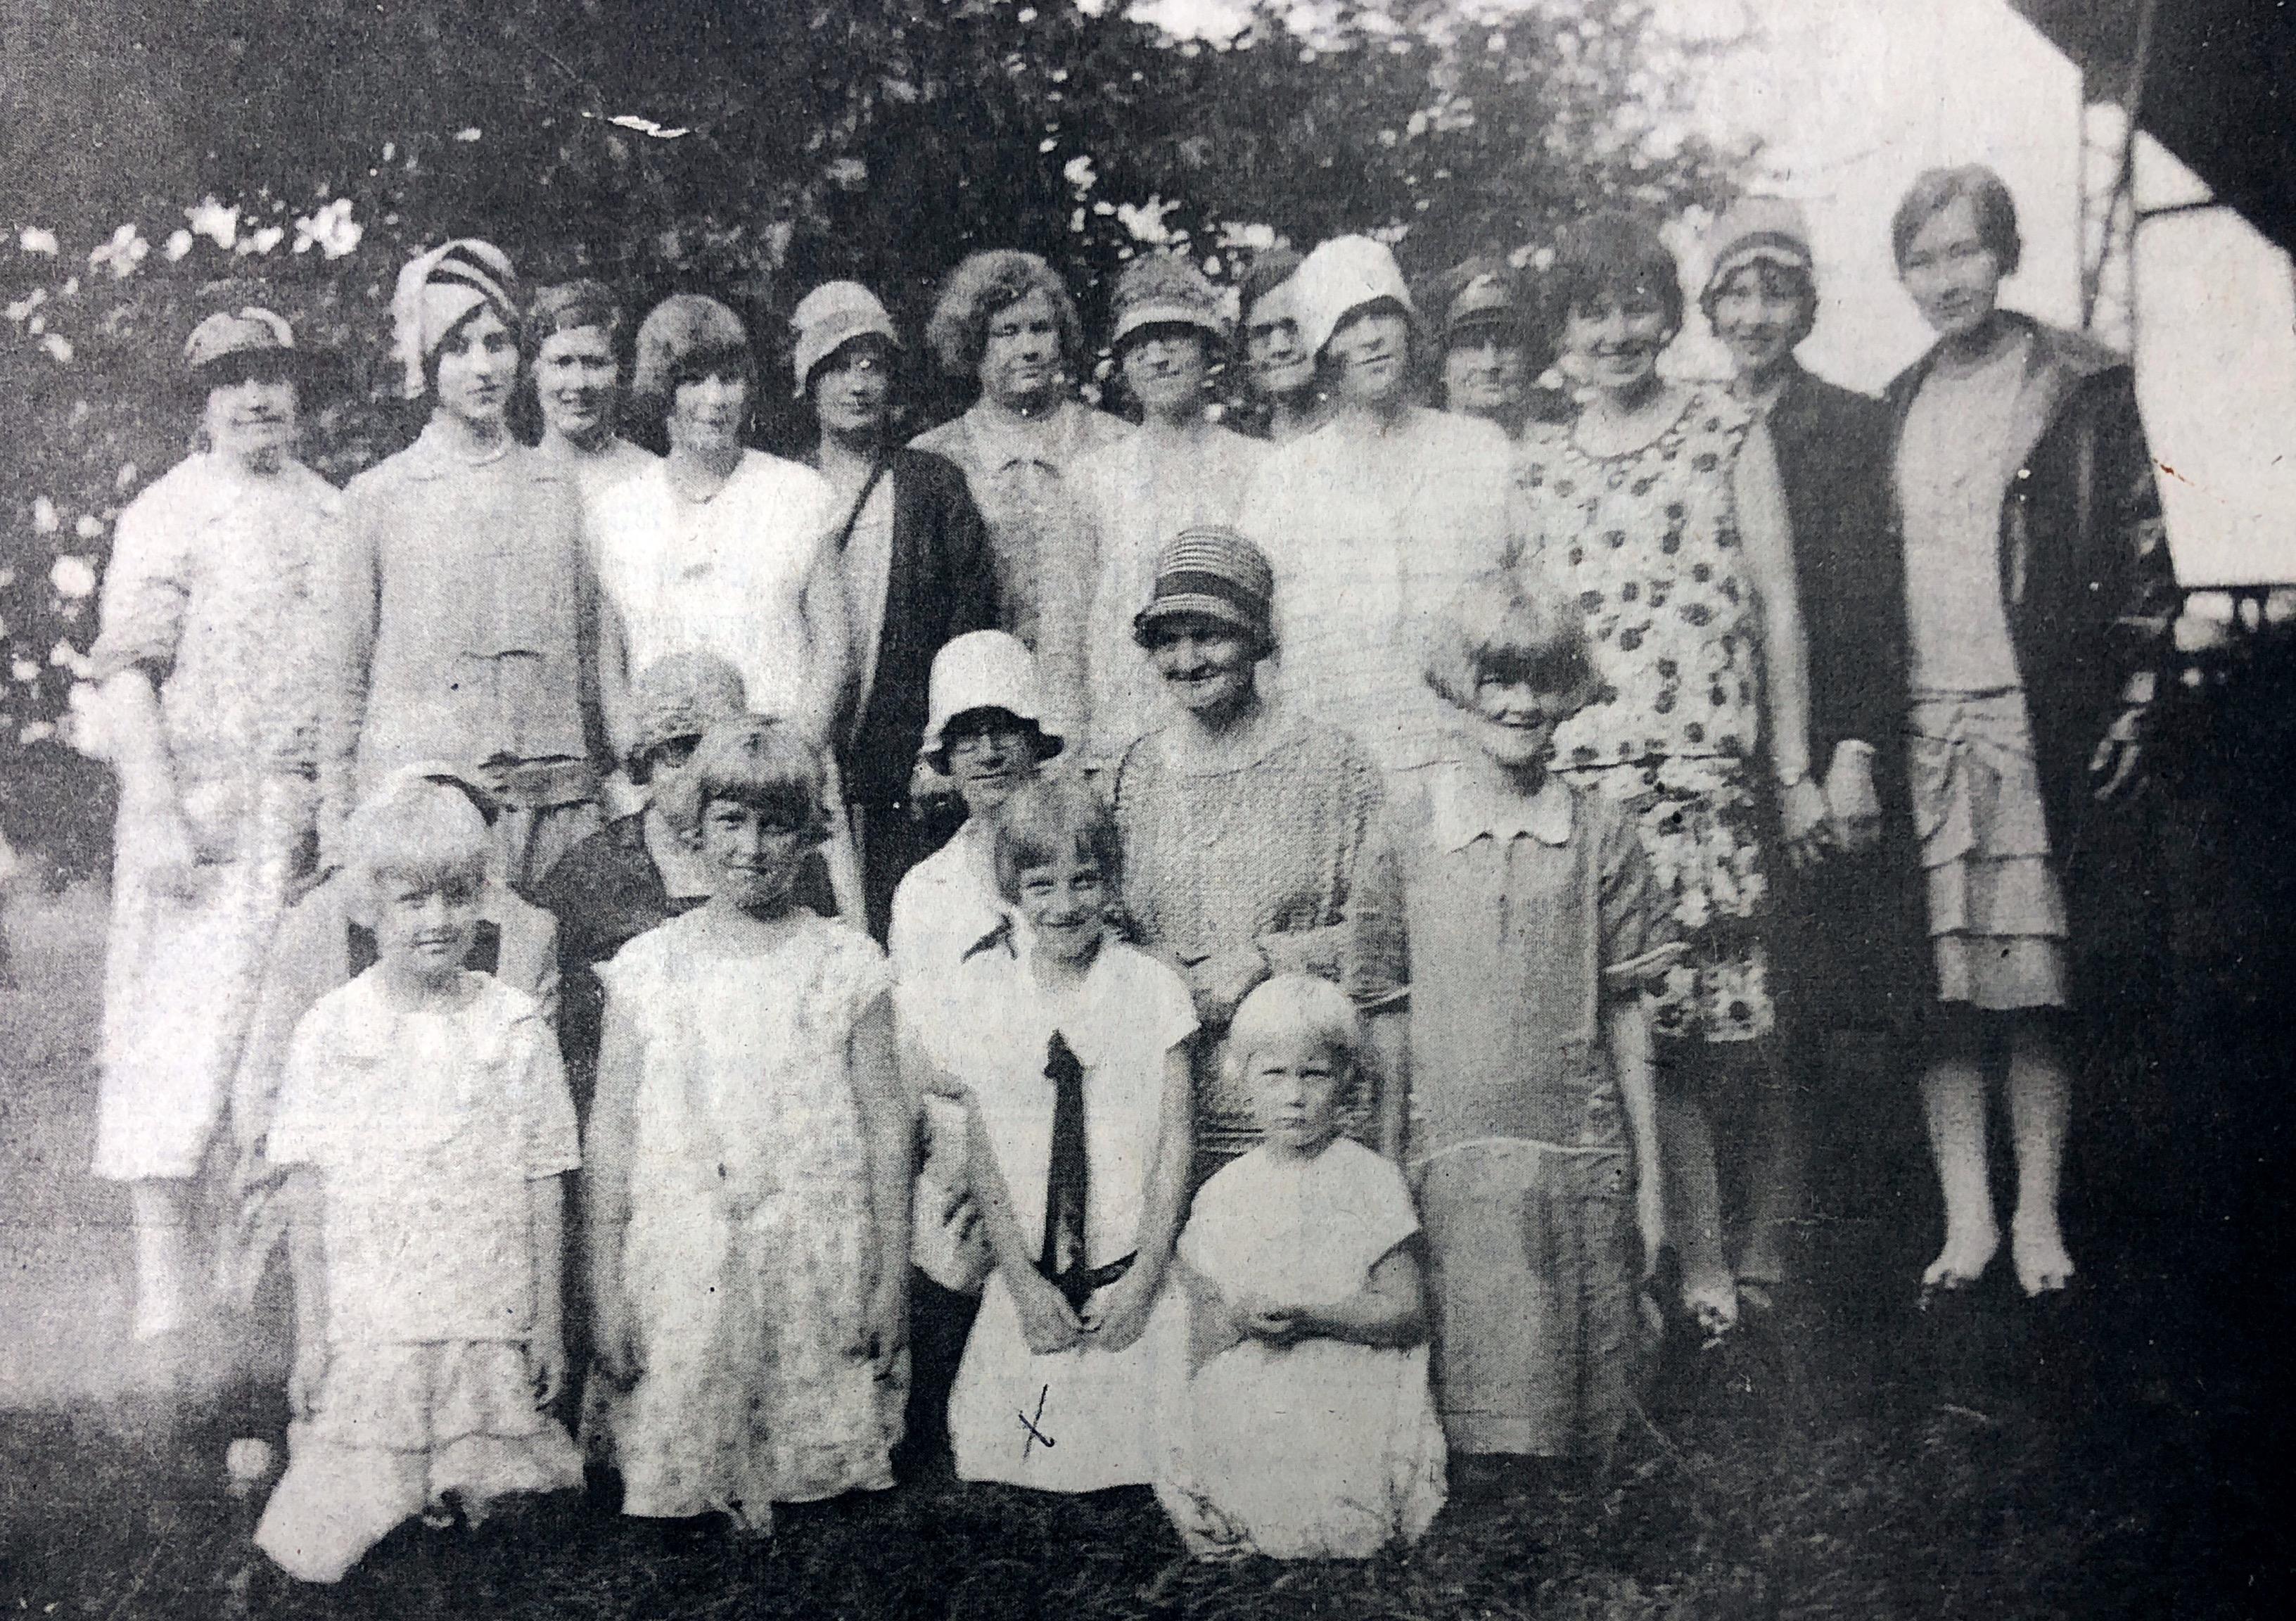 1928 Westrum Reunion women